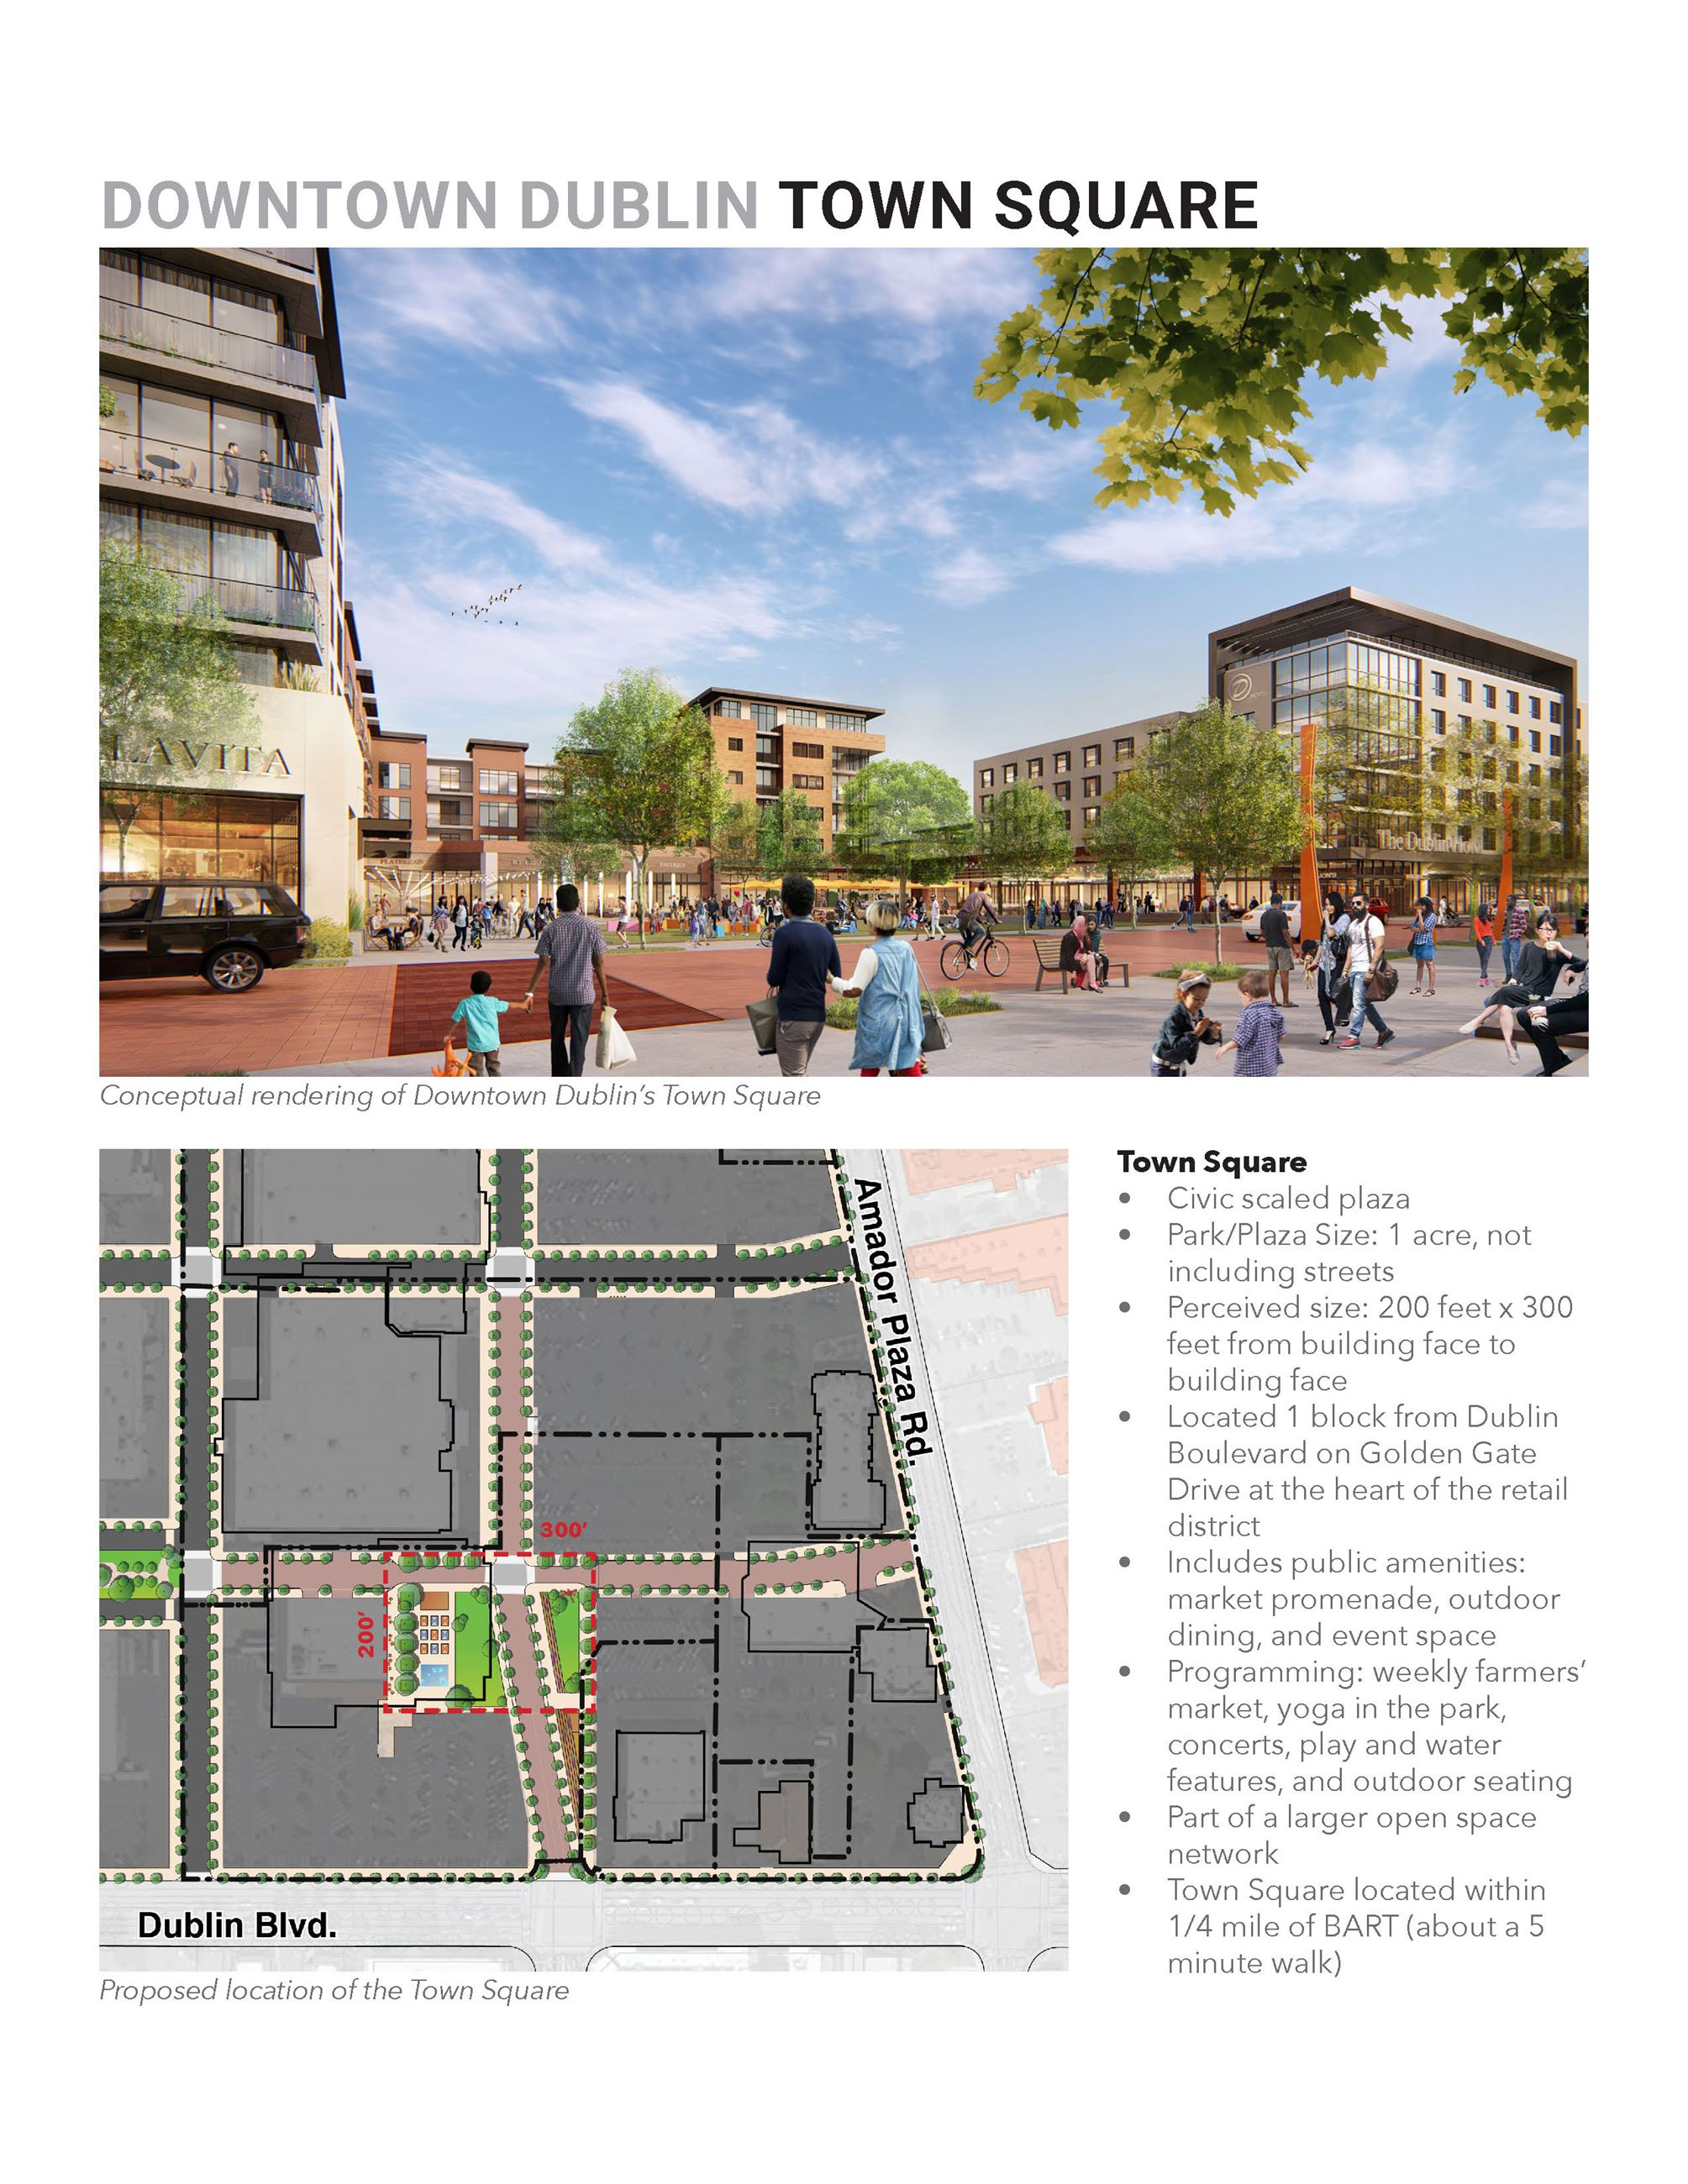 Adopted Downtown Dublin Preferred Vision - Rendering of Town Square